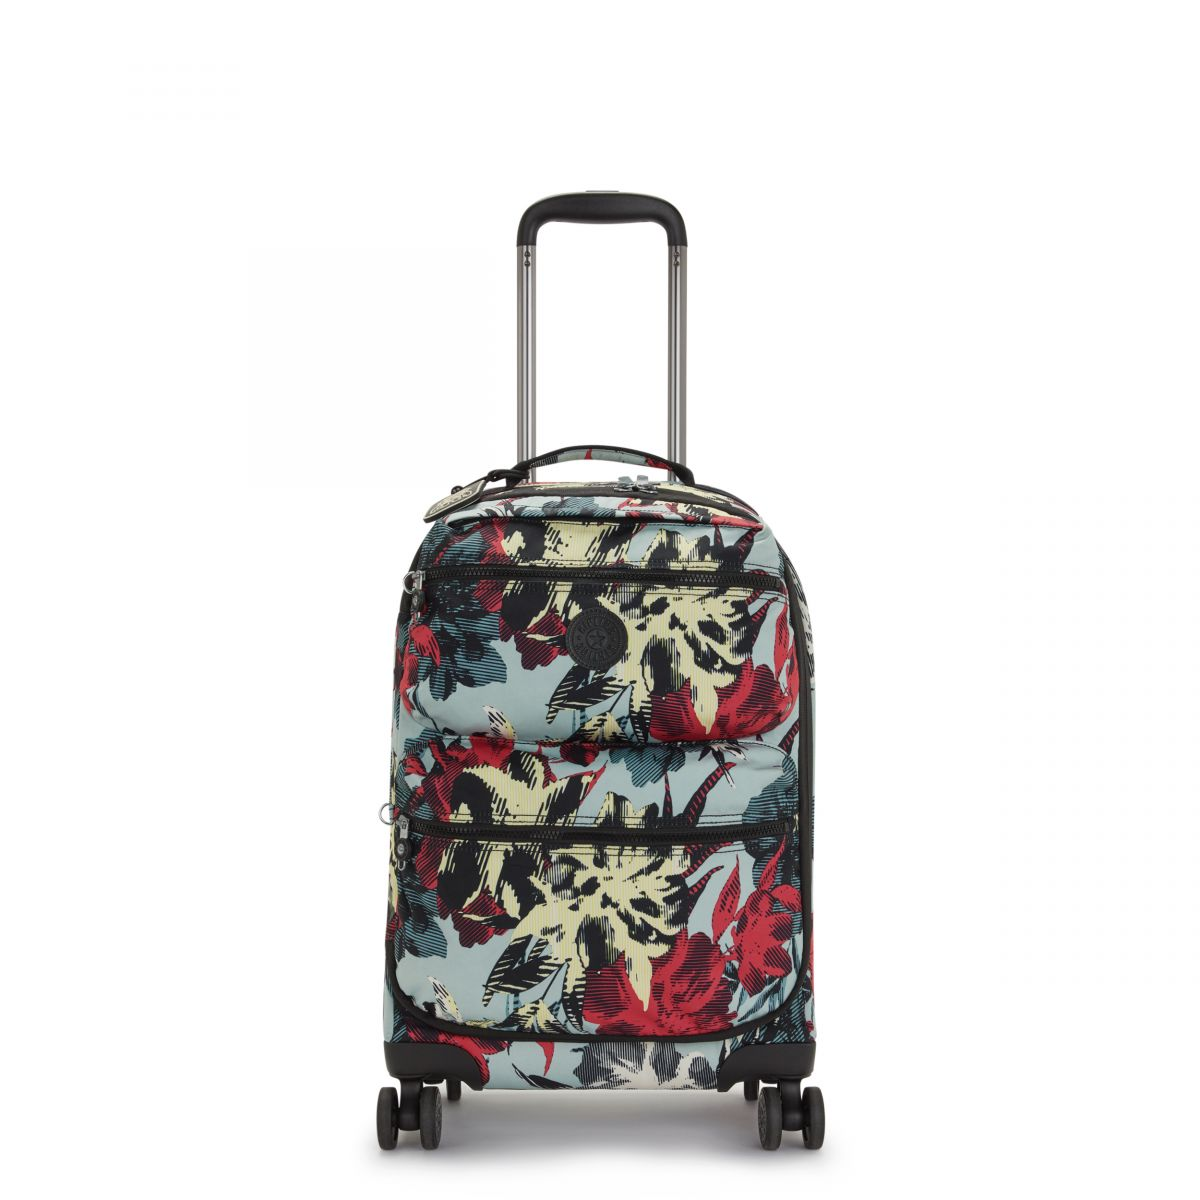 CITY SPINNER S LUGGAGE by Kipling - Front view